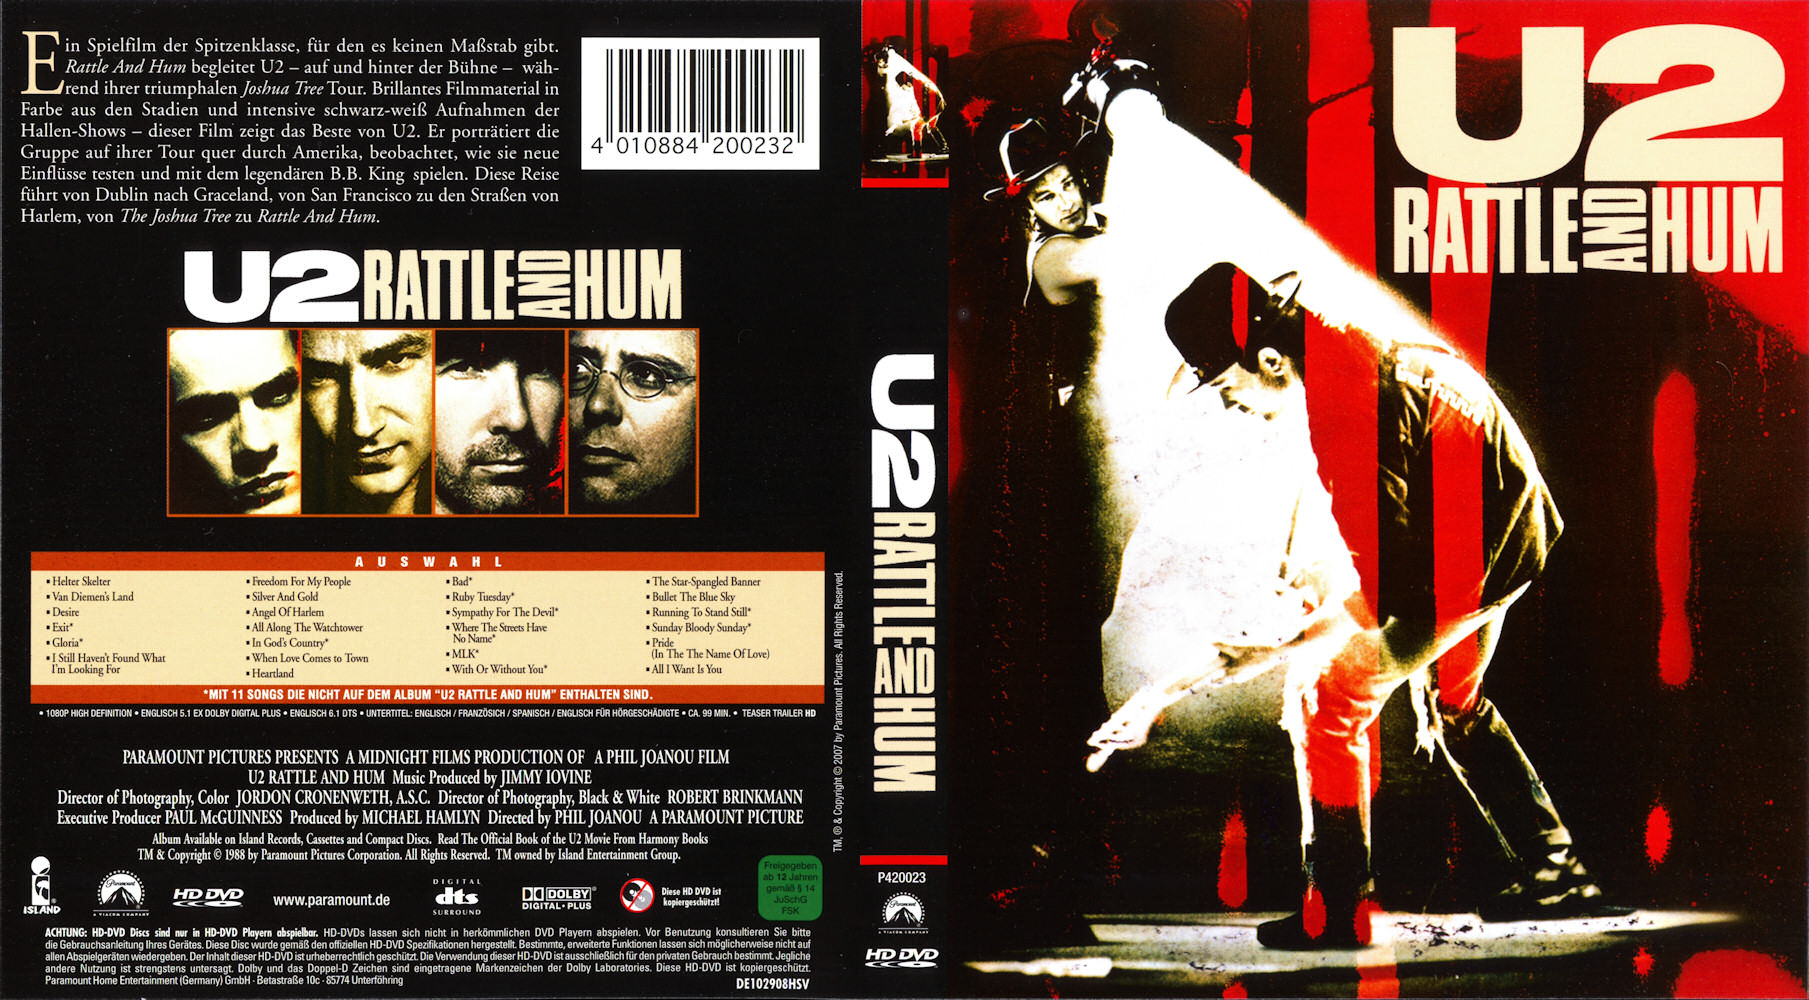 U2 - rattle and hum at discogs